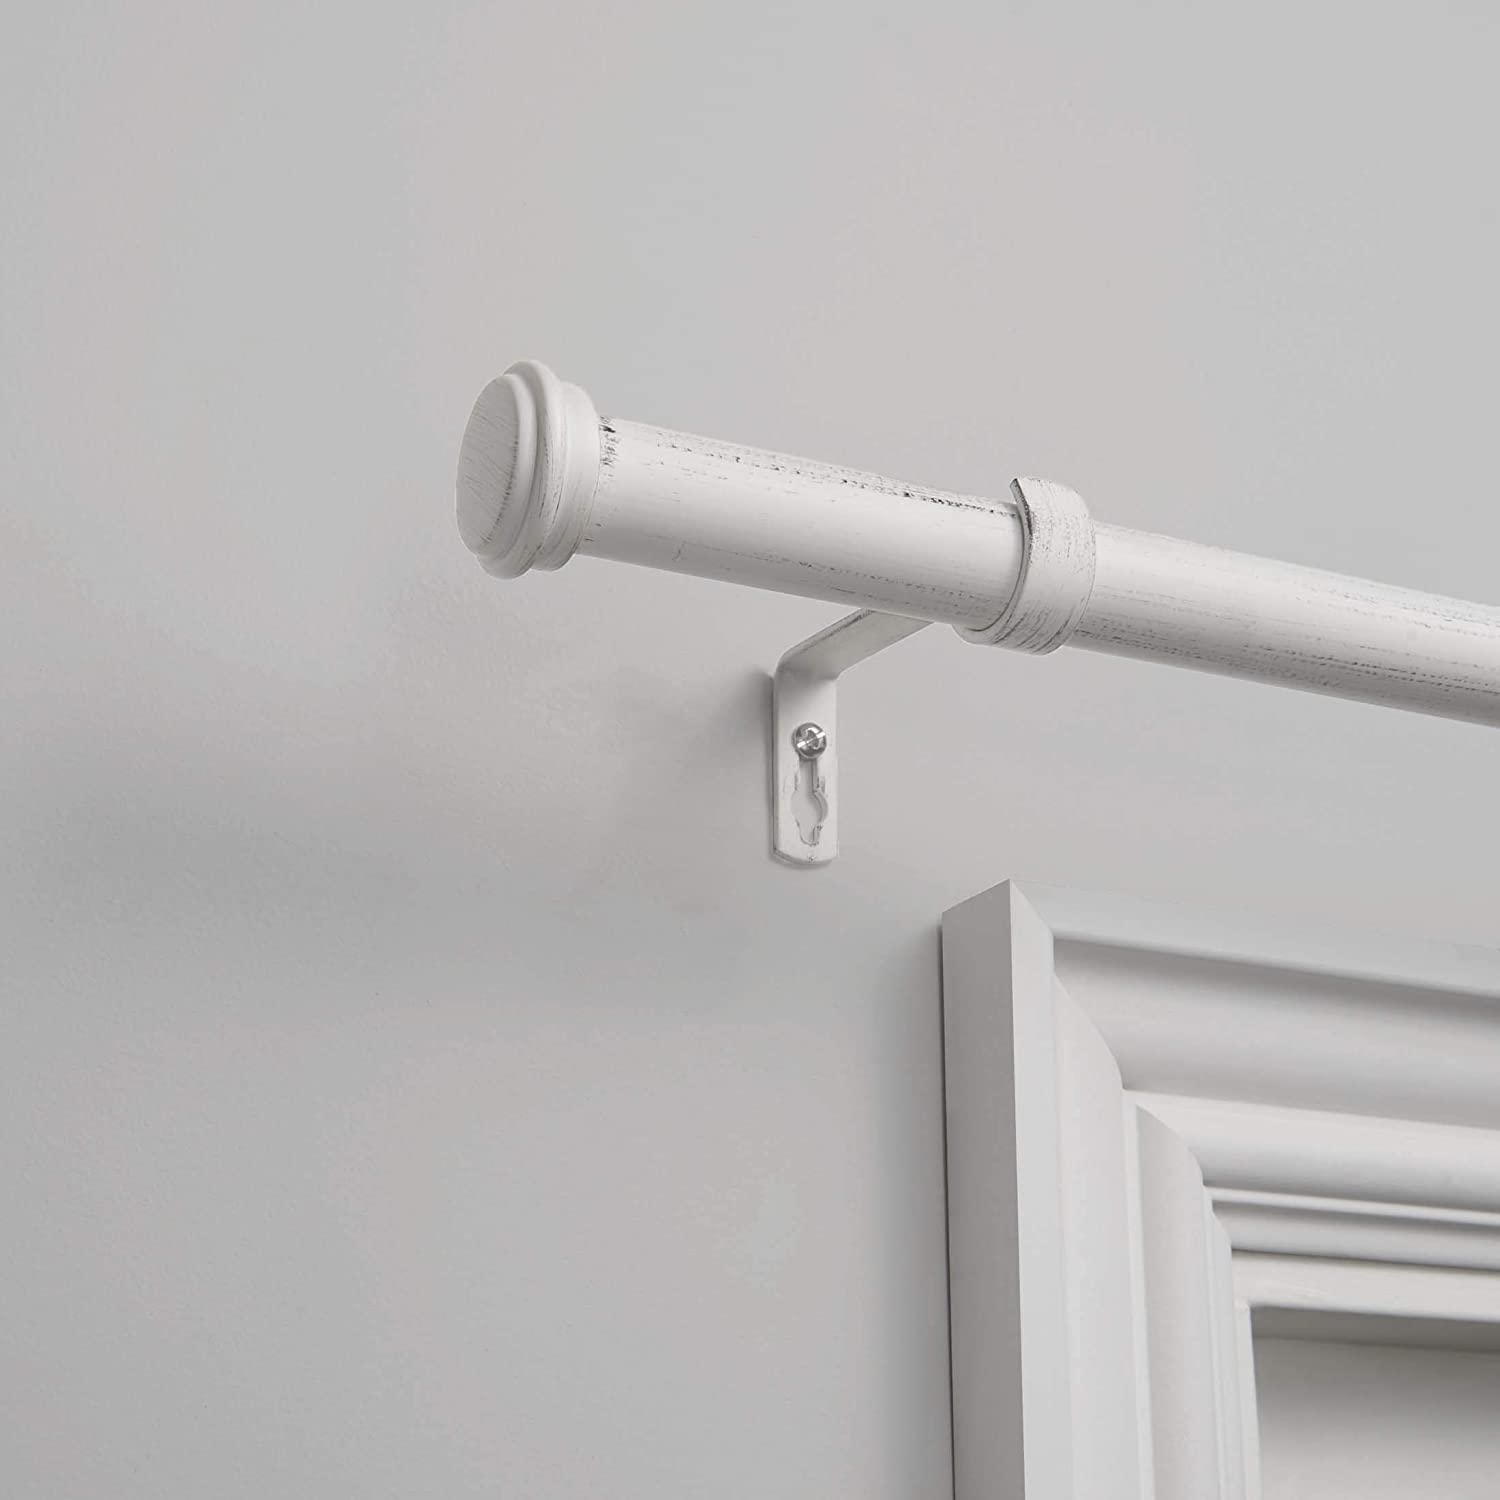 Distressed White Exclusive Home Curtains Topper 1 Curtain Rod and Finial Set 66-120